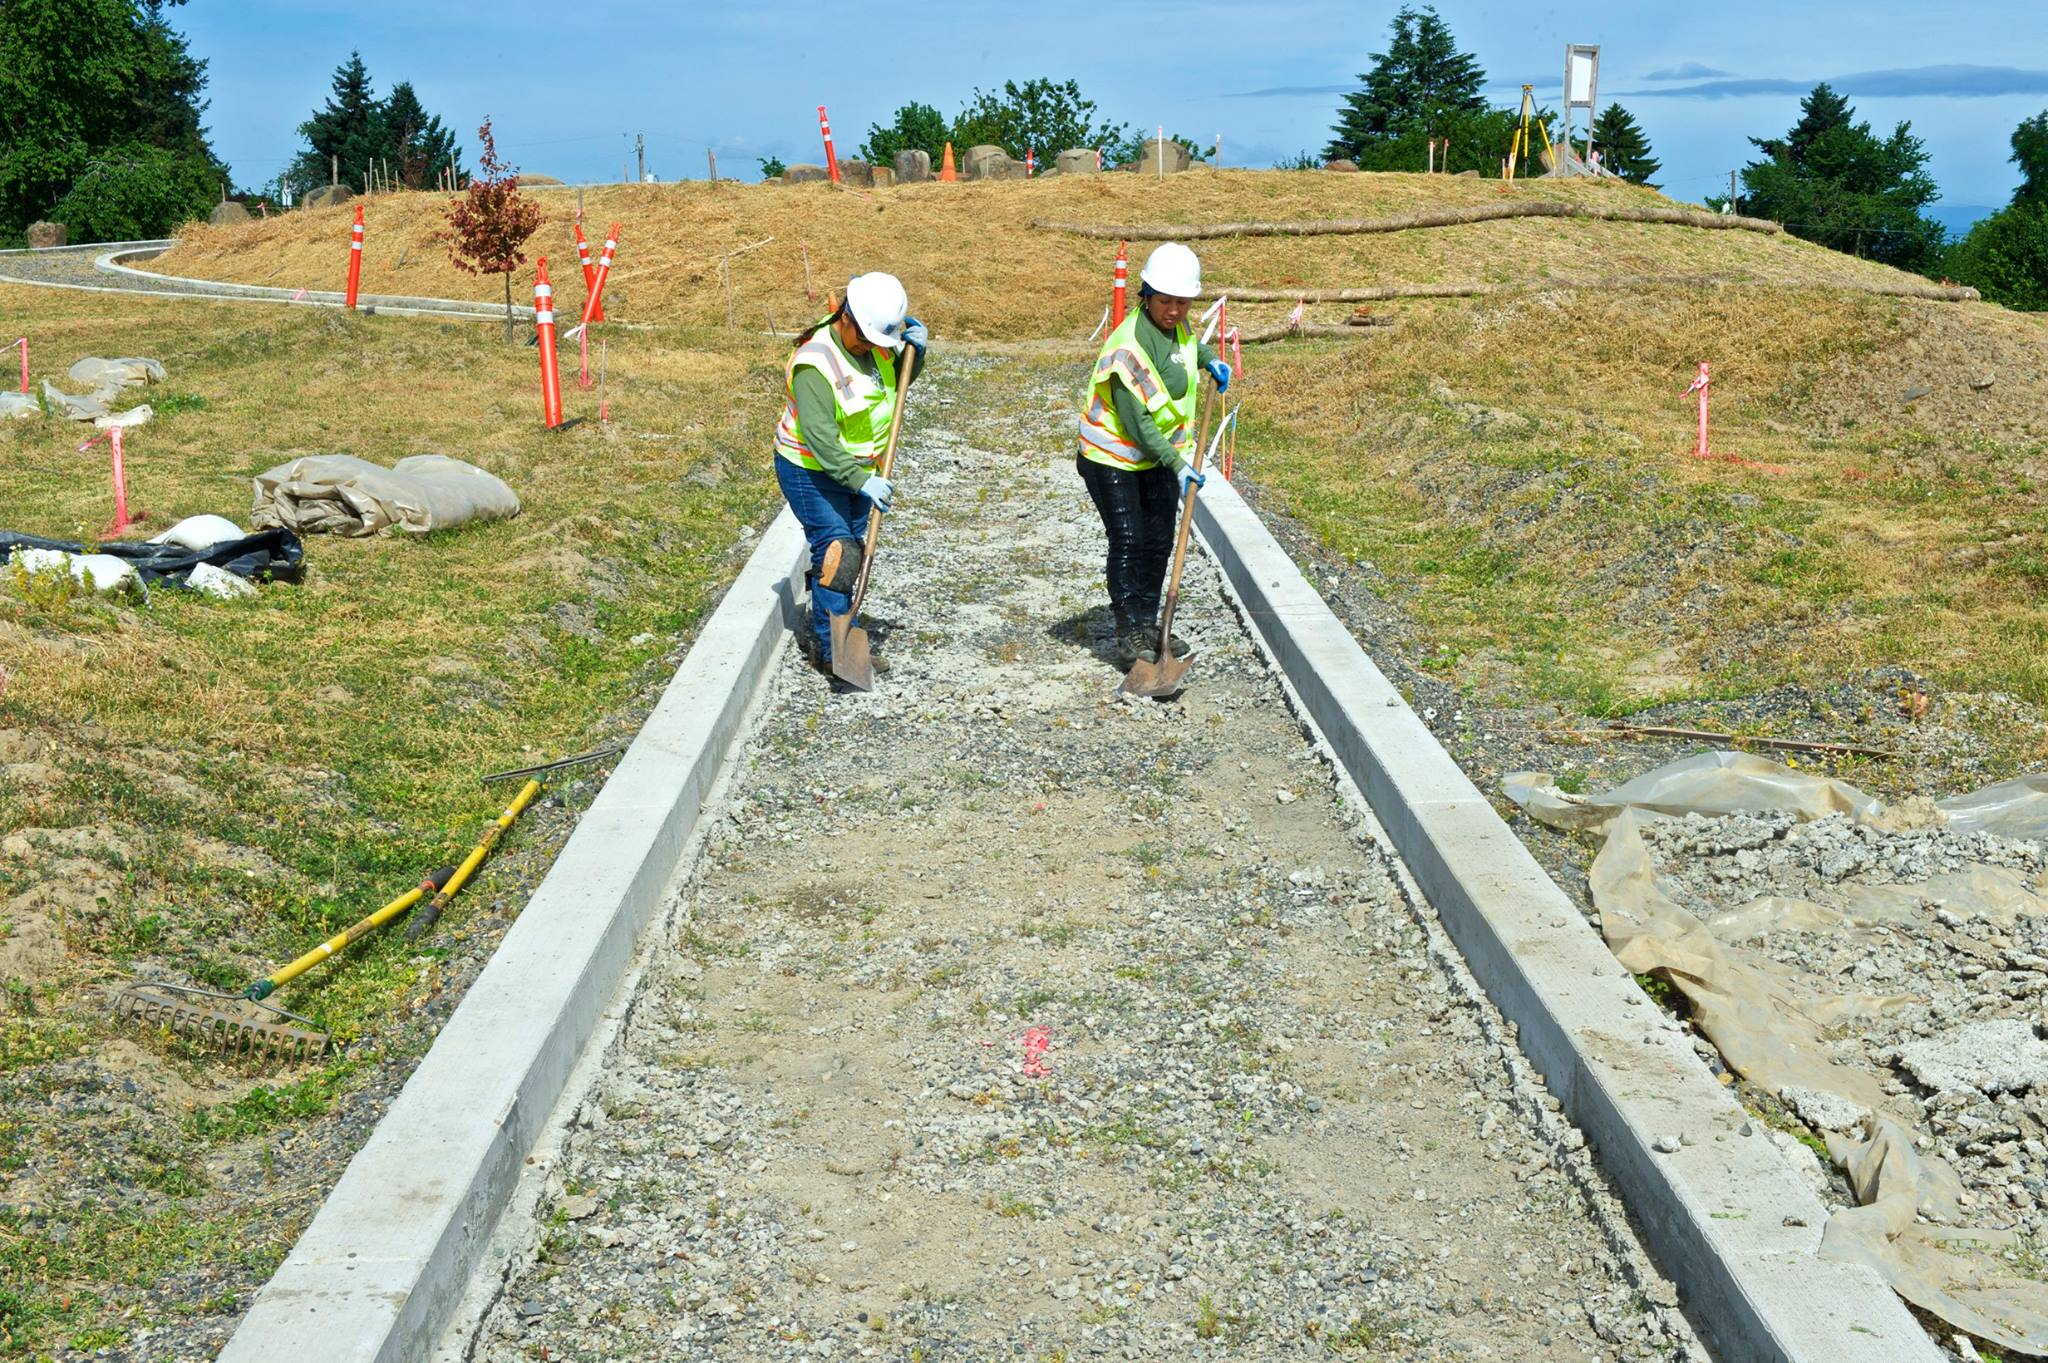 Crew members Rosa and Zoemy prepare a pathway at Cully Park.